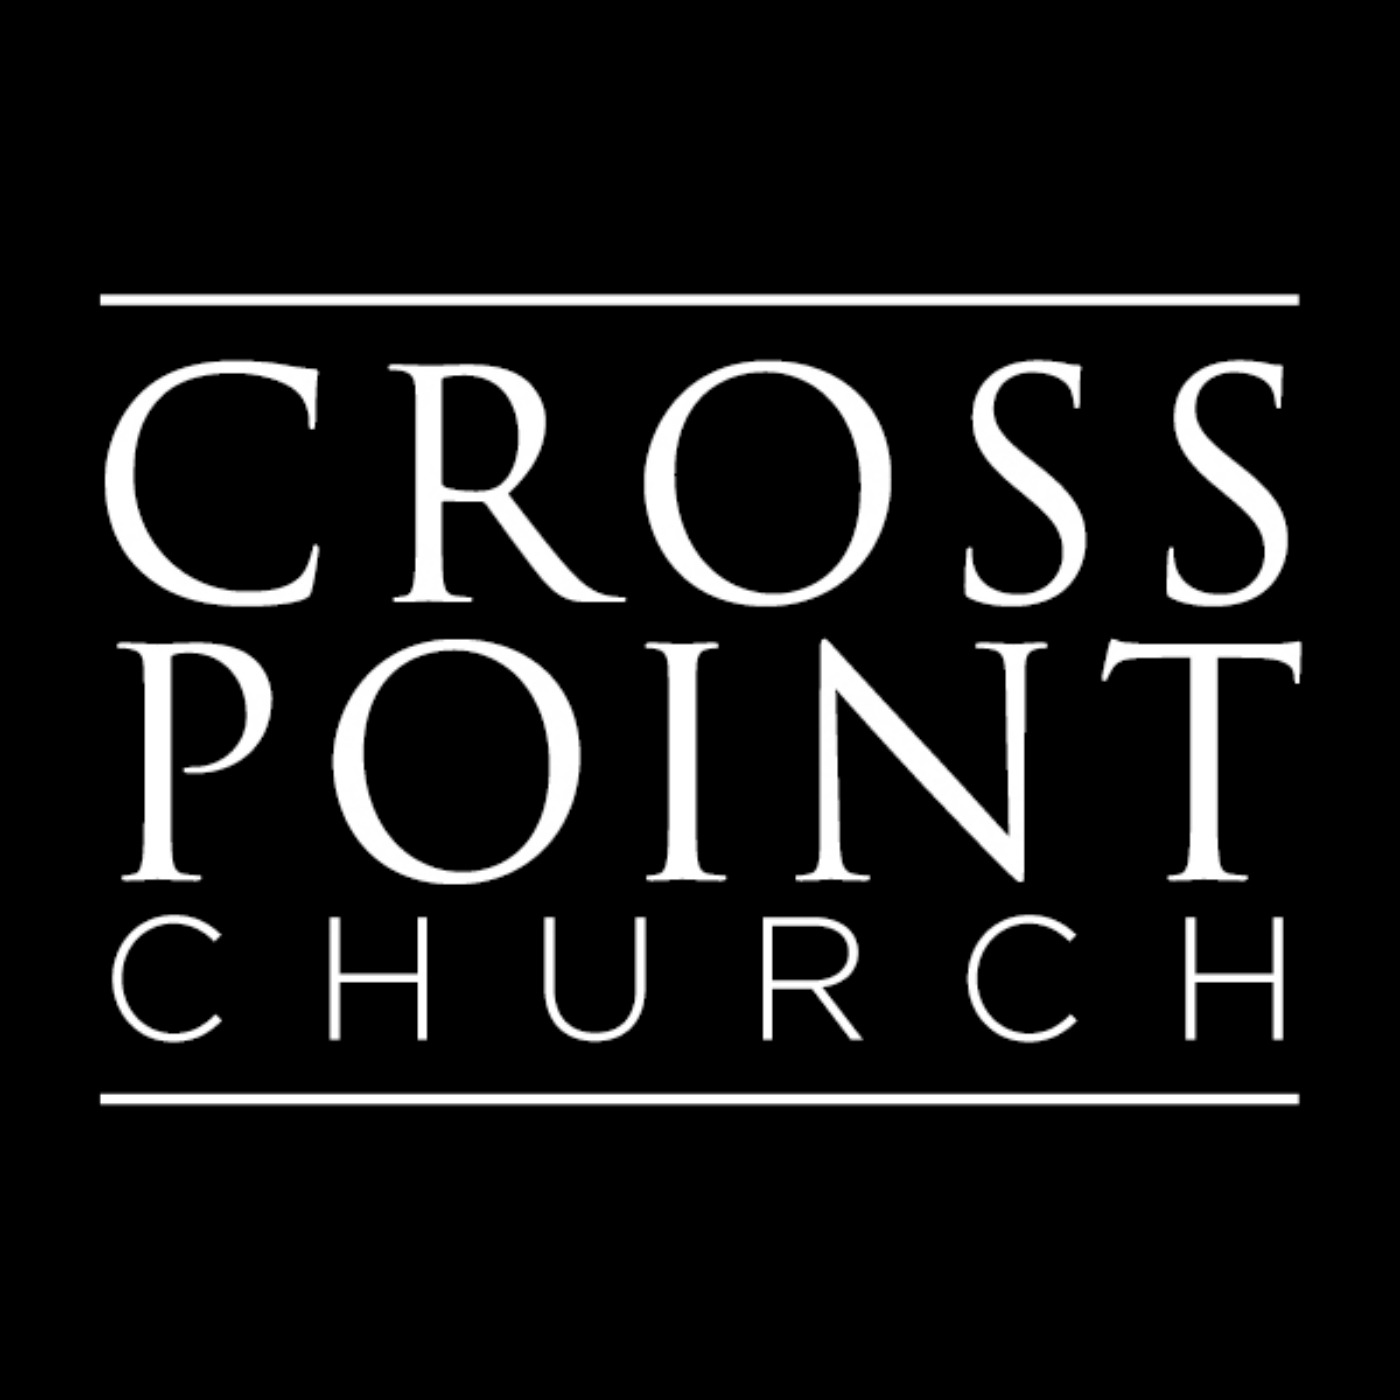 CrossPoint Church | East Peoria, Illinois